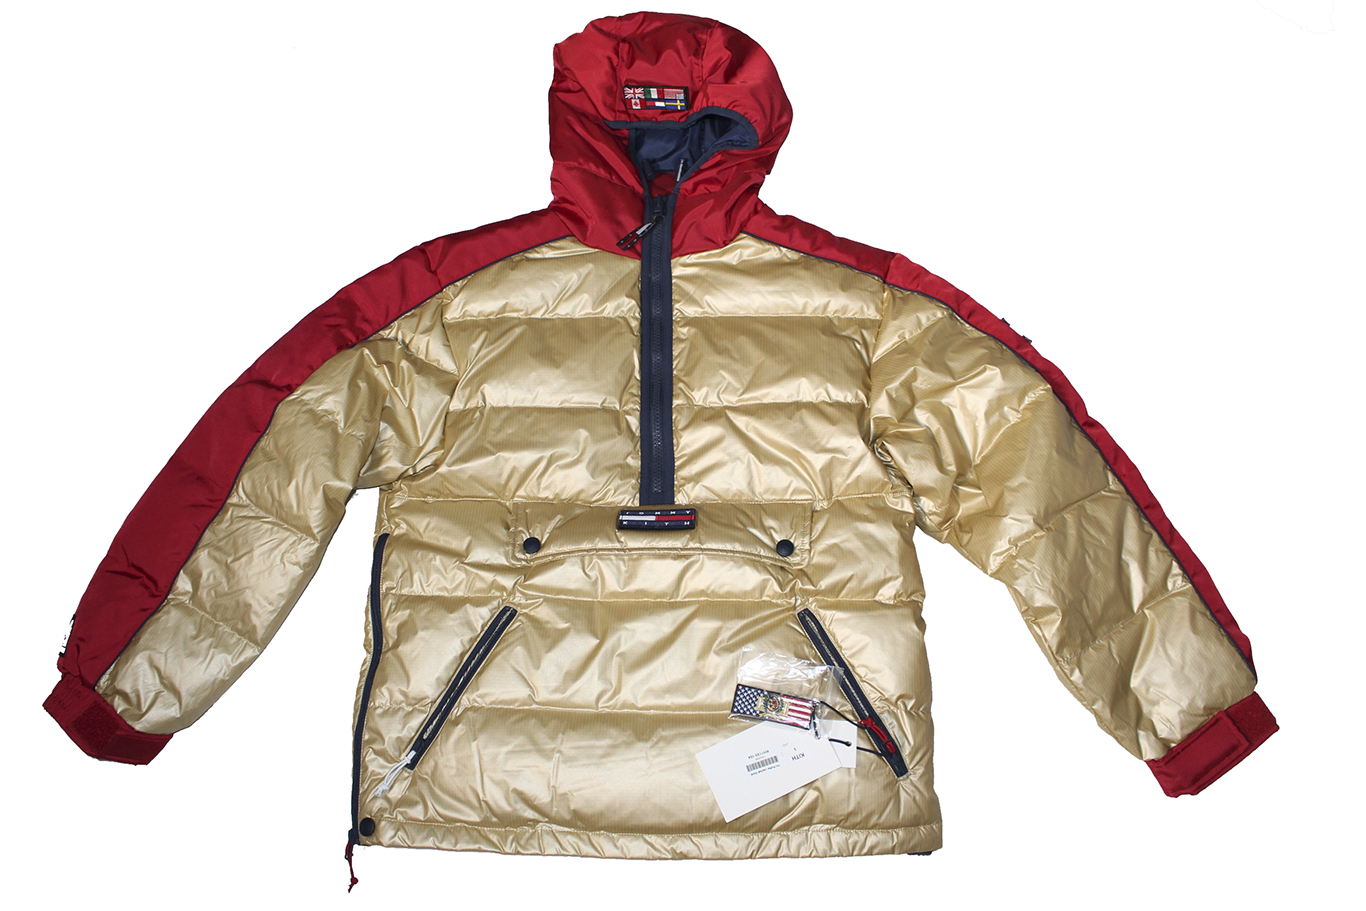 KITH X TOMMY HILFIGER PUFFER JACKET